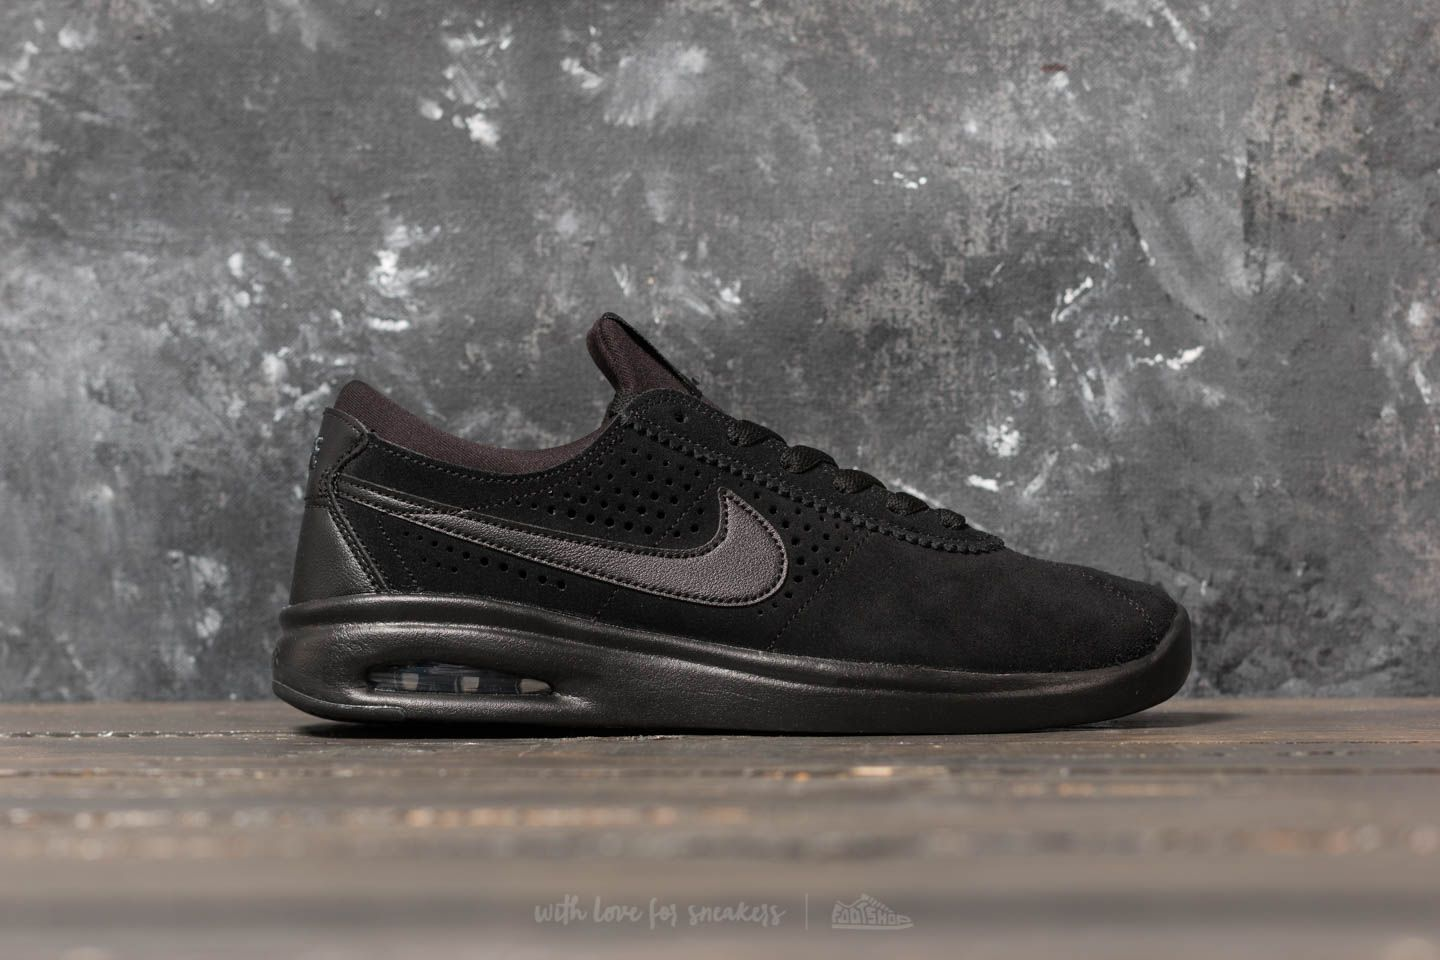 san francisco 8fa78 dab1f Nike SB Air Max Bruin Vapor Black  Black-Anthracite at a great price 125